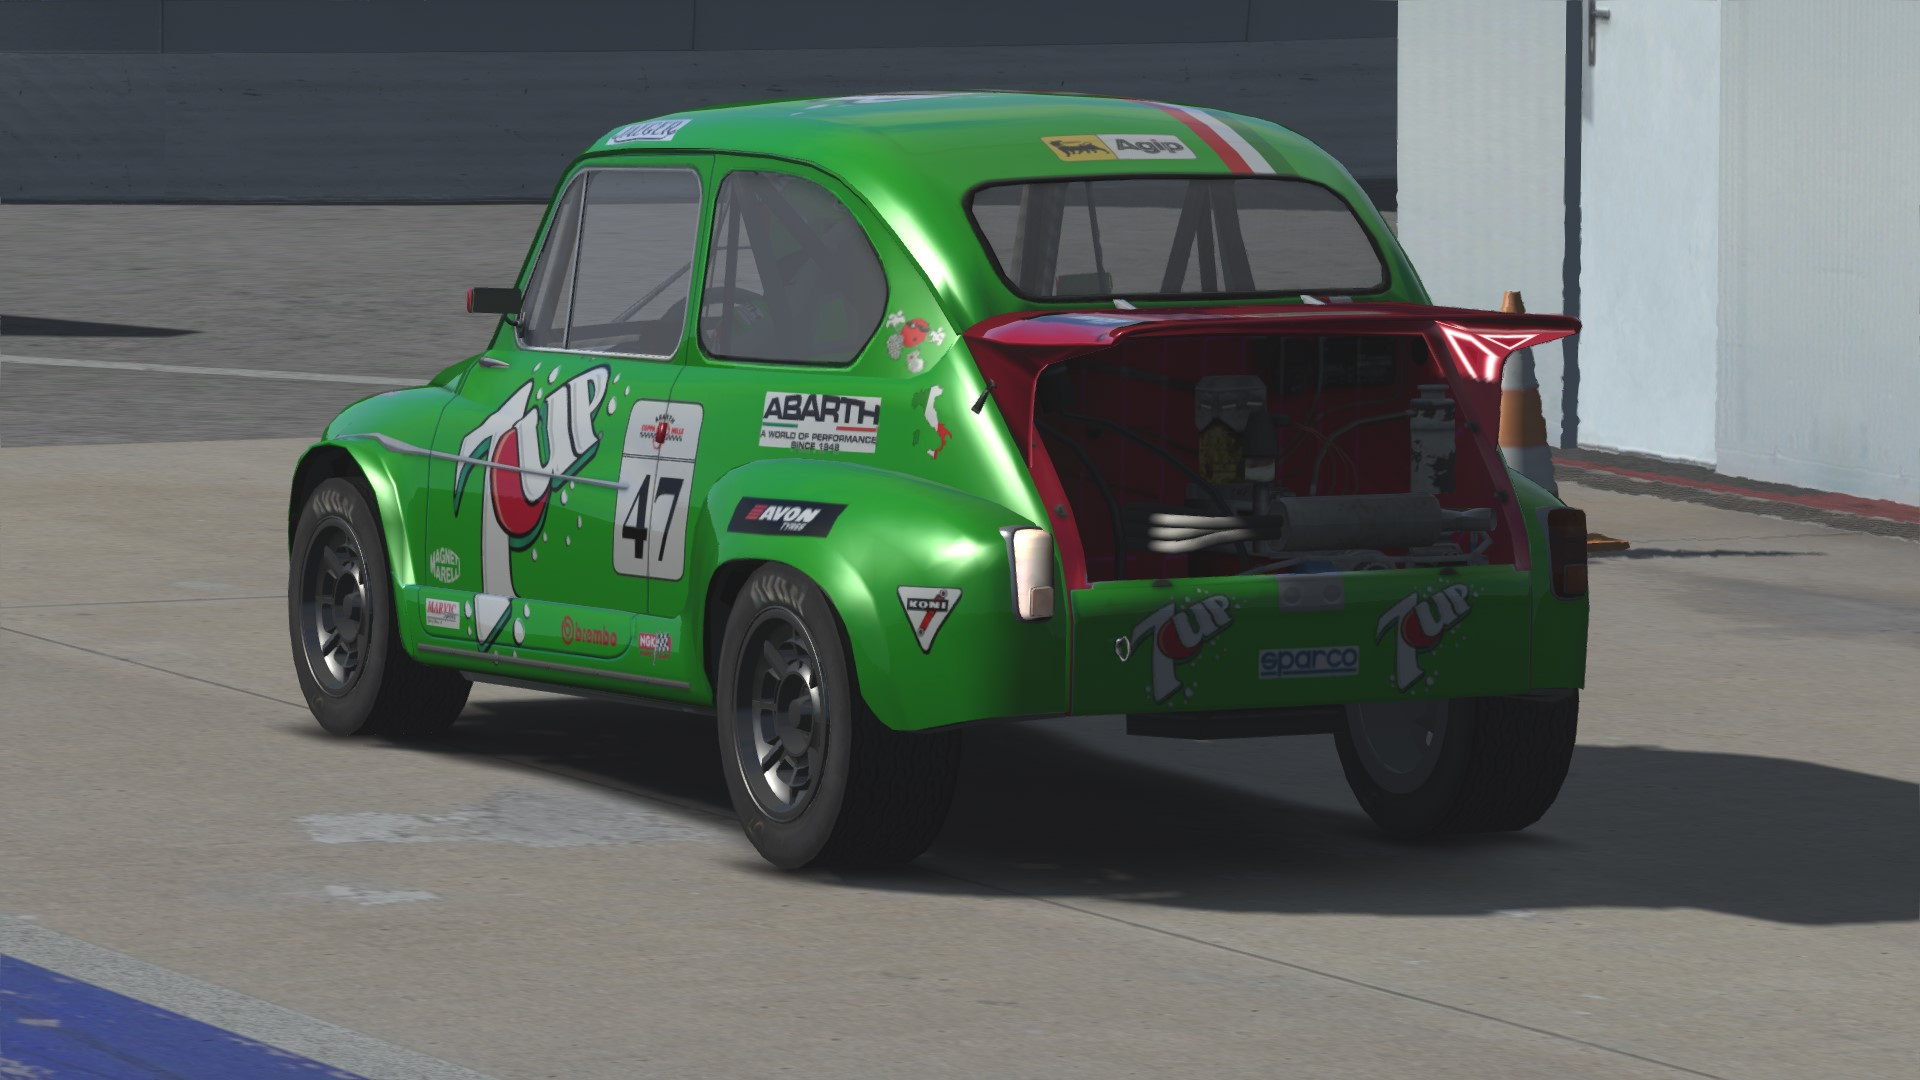 Screenshot_abarth_1000tcrgr5_monza_22-1-116-12-14-35.jpg